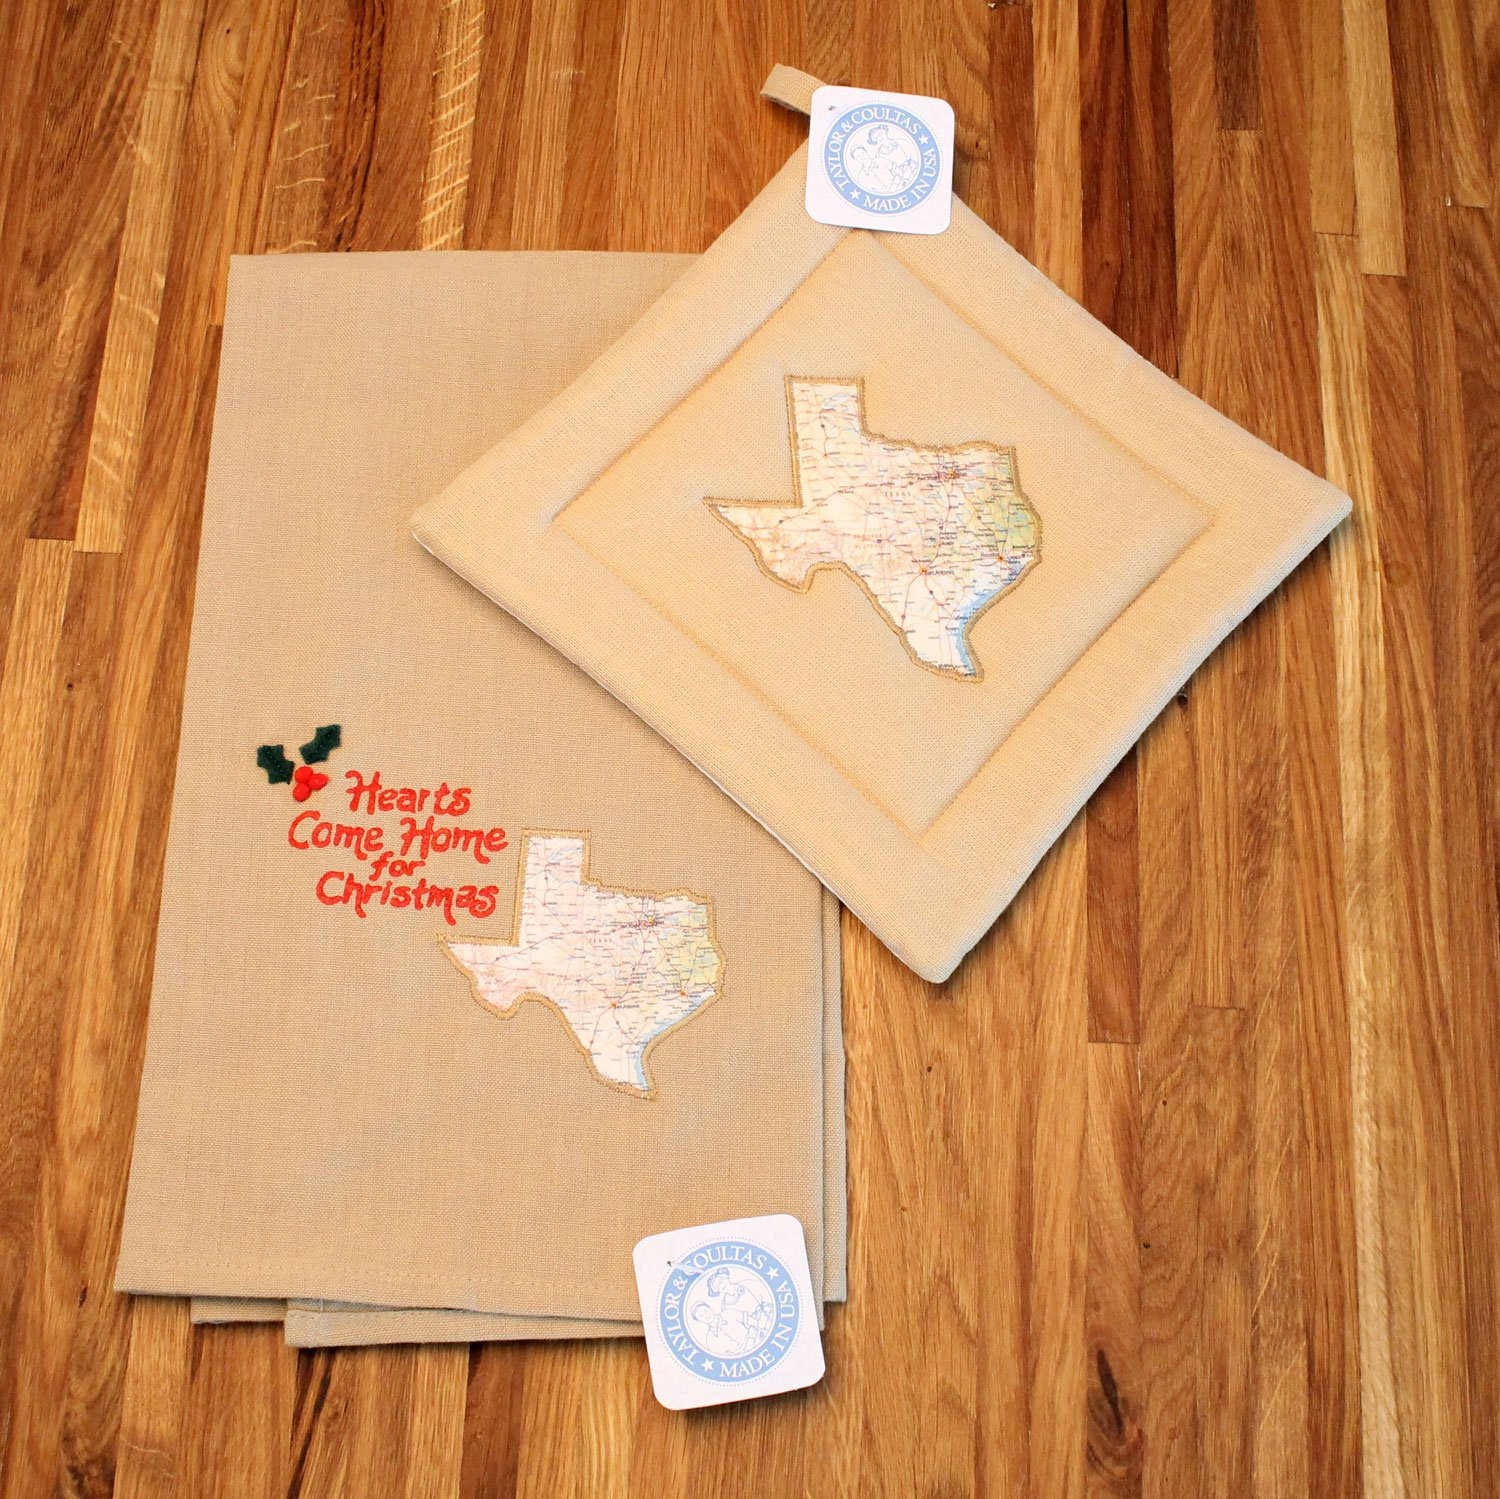 Custom Holiday Christmas Kitchen Towel and Potholder Gift Set (Texas) by Taylor and Coultas USA